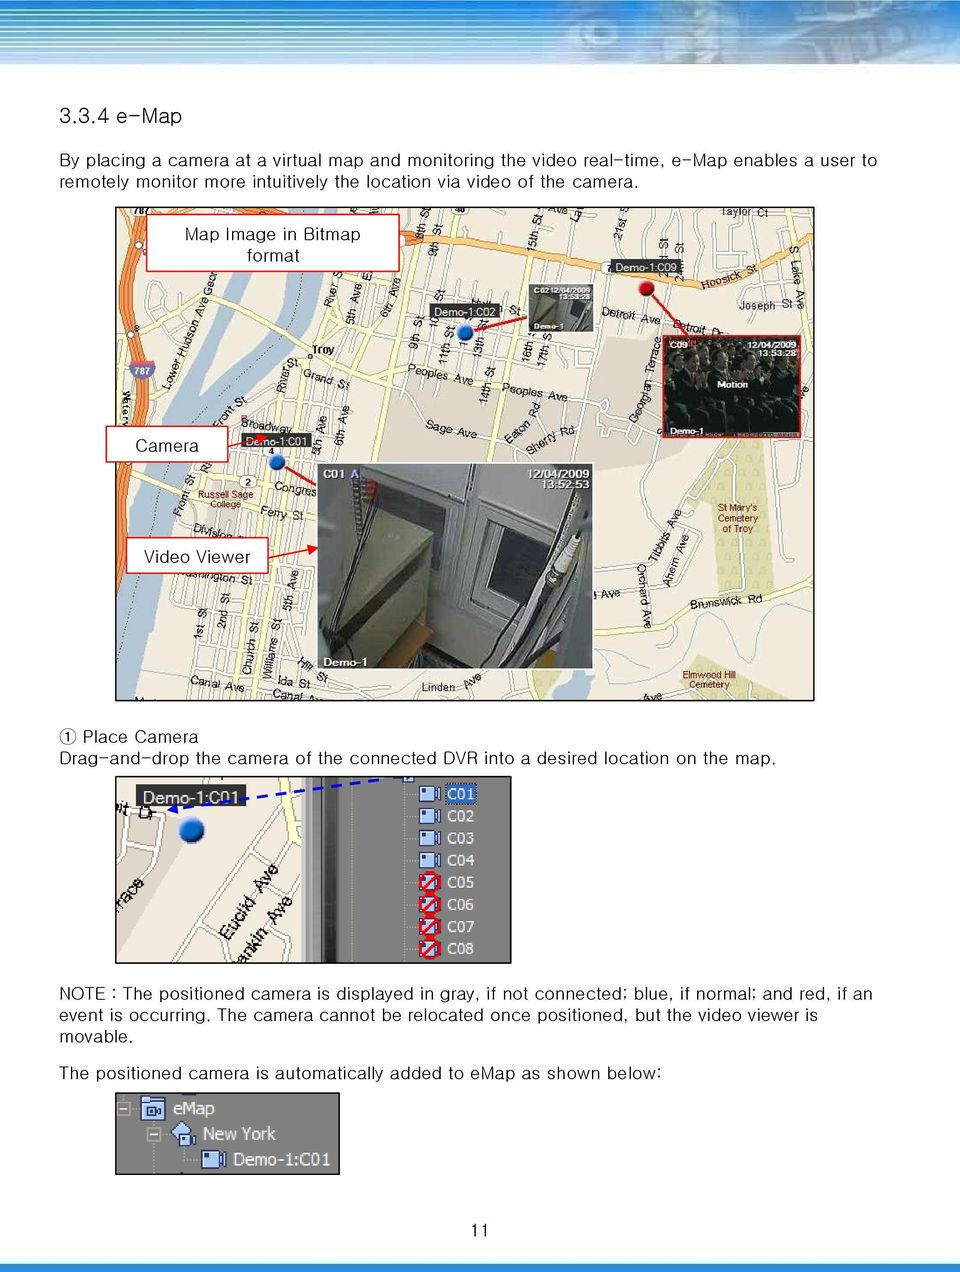 Map Image in Bitmap format Camera Video Viewer 1 Place Camera Drag-and-drop the camera of the connected DVR into a desired location on the map.